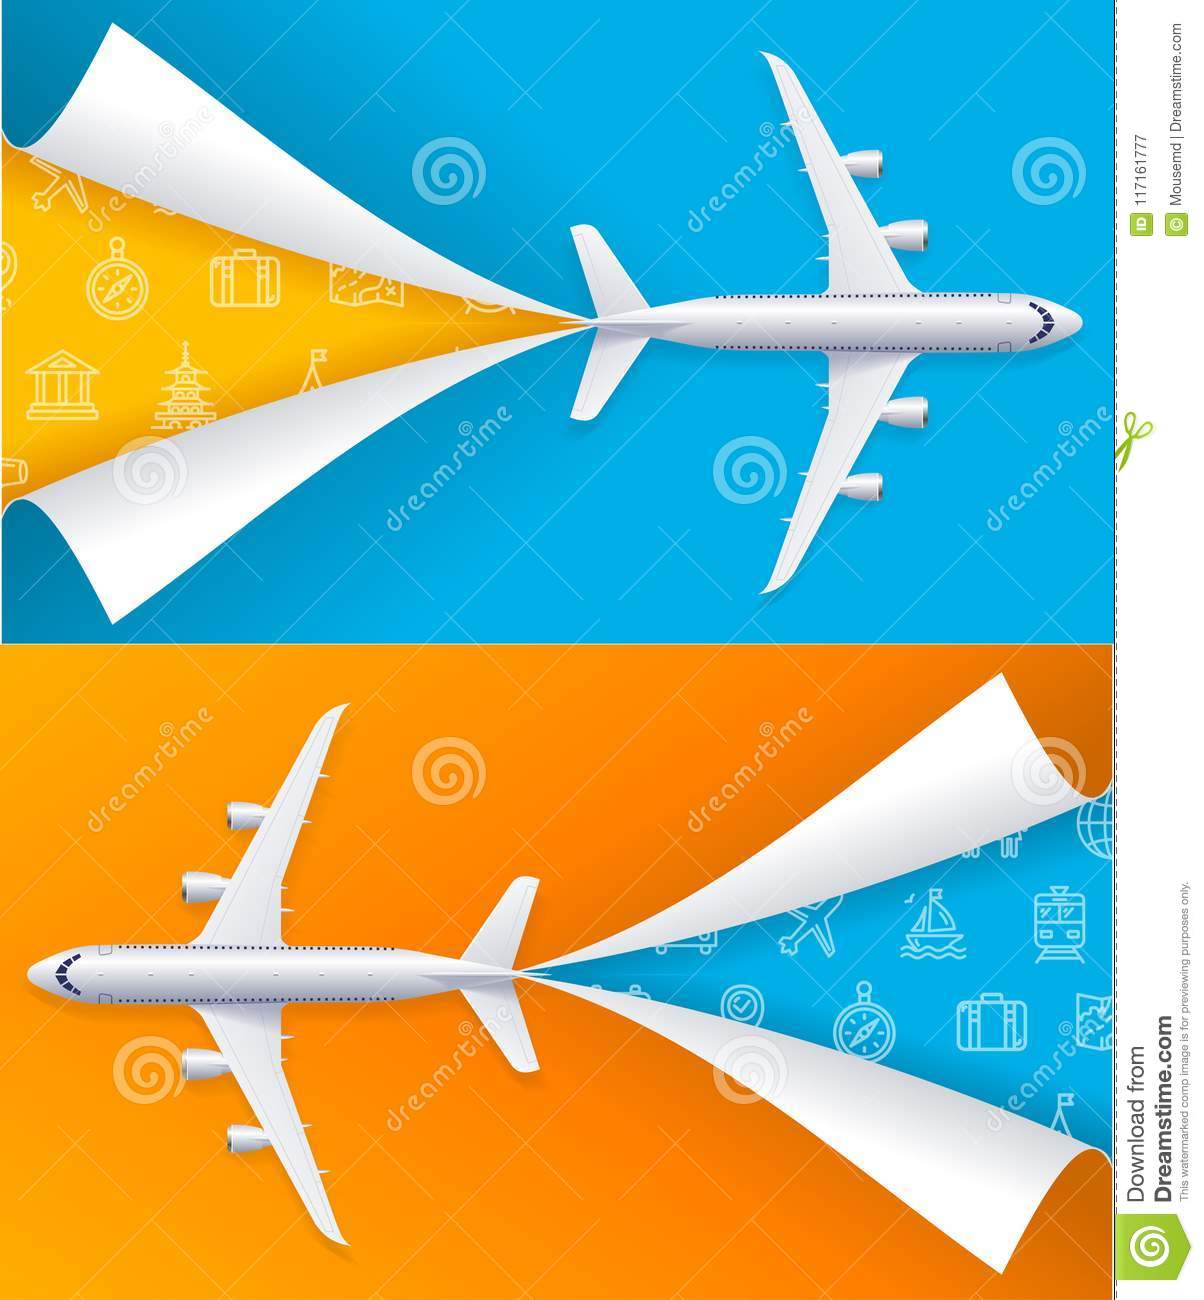 Travel Promotion Banners Grain Banners